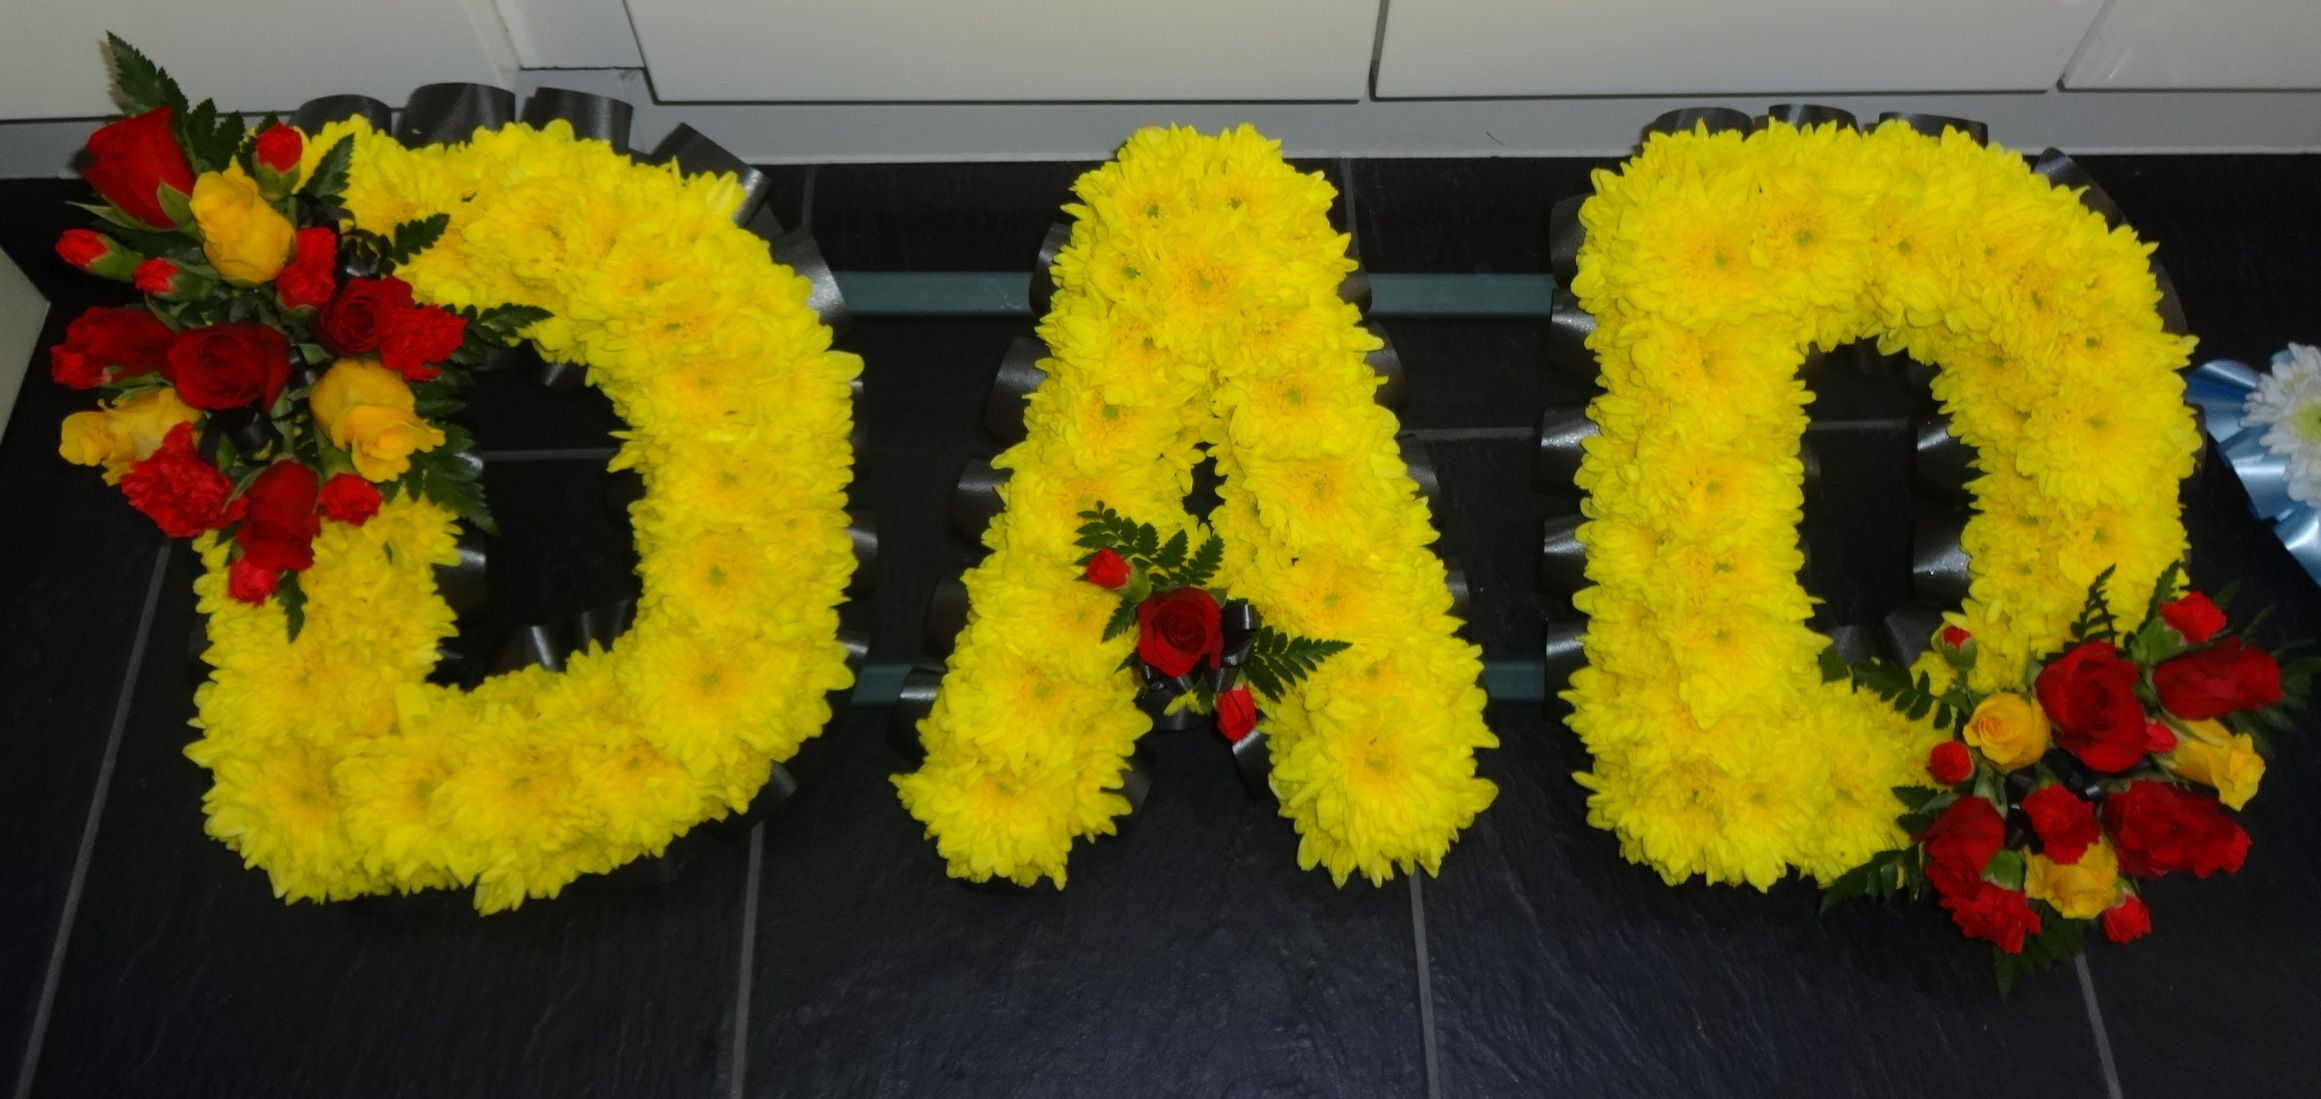 Dad funeral flowers image collections flower wallpaper hd dad tribute in yellow red and black funeral flowers pinterest funeral flowers dad tribute in yellow izmirmasajfo